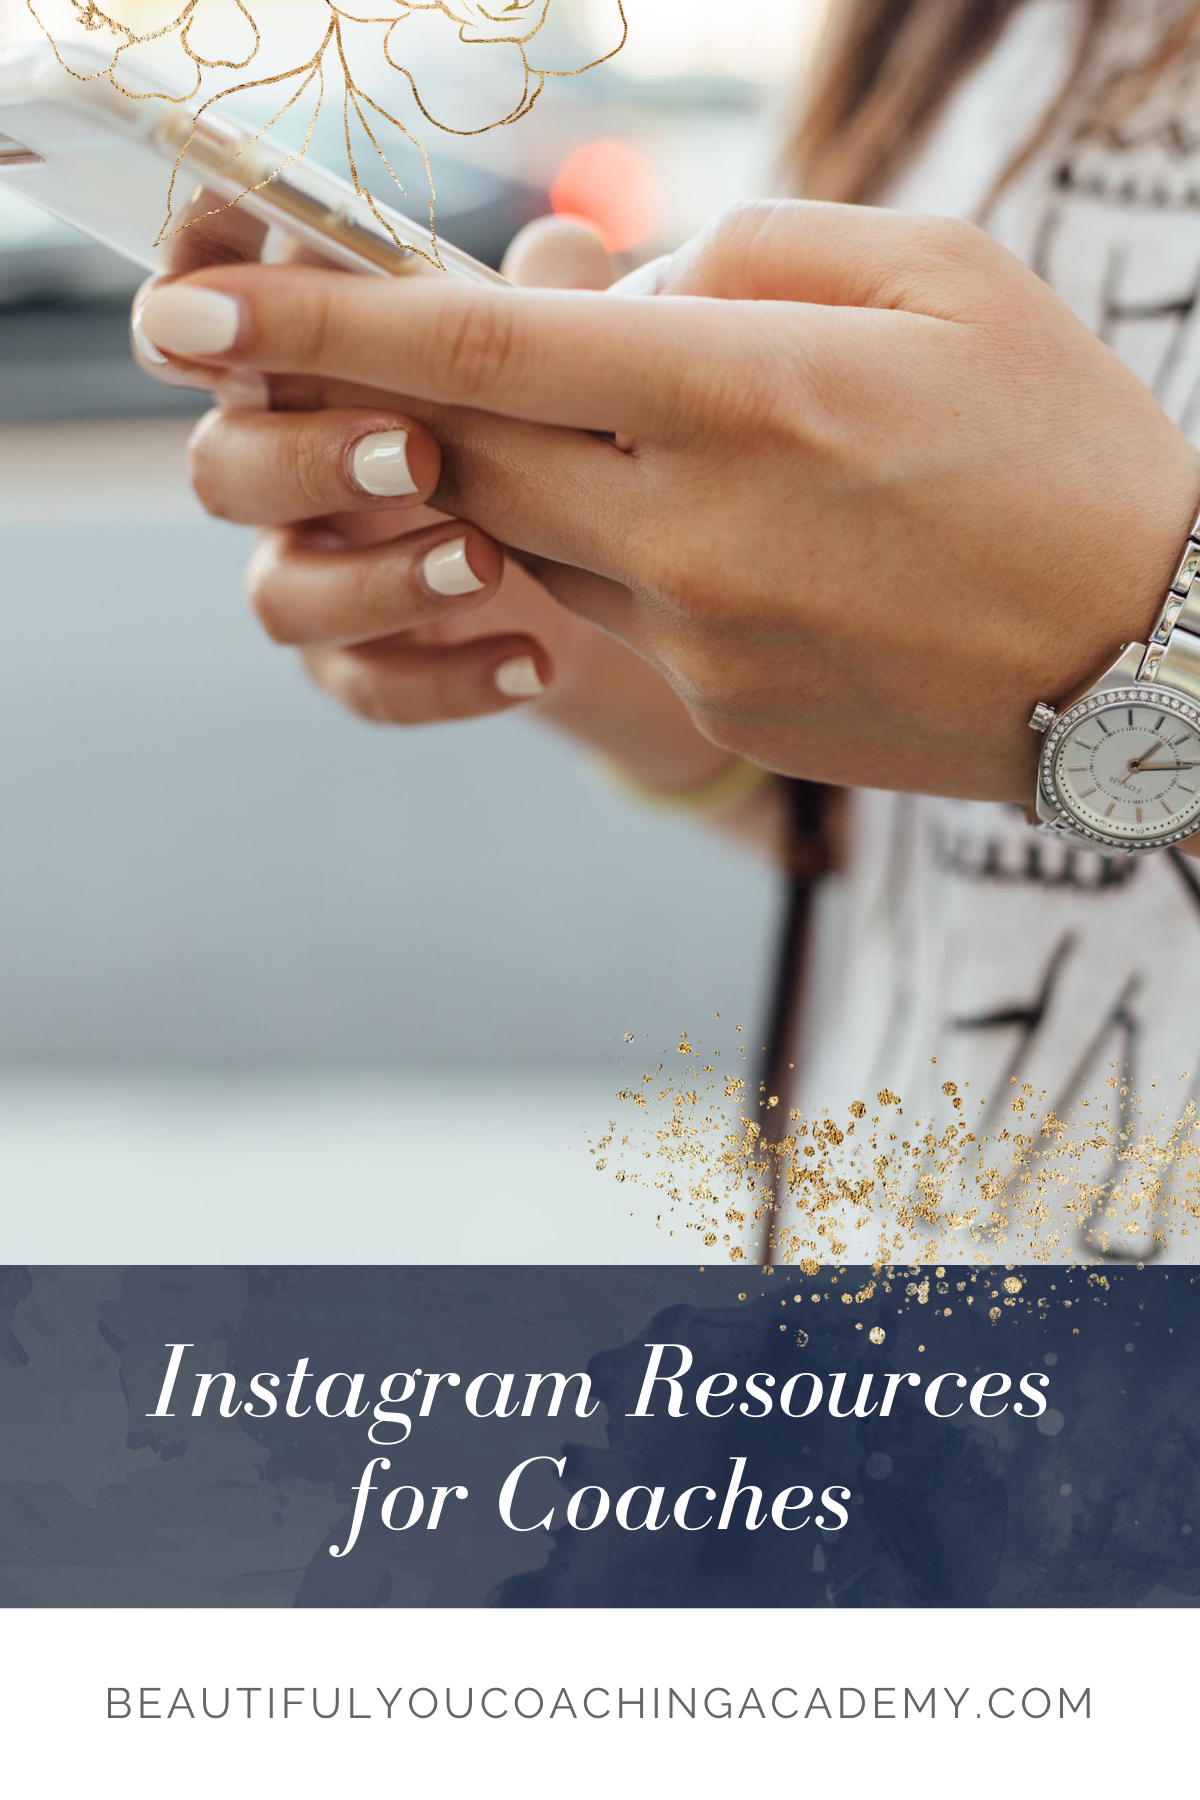 Instagram Resources for Coaches